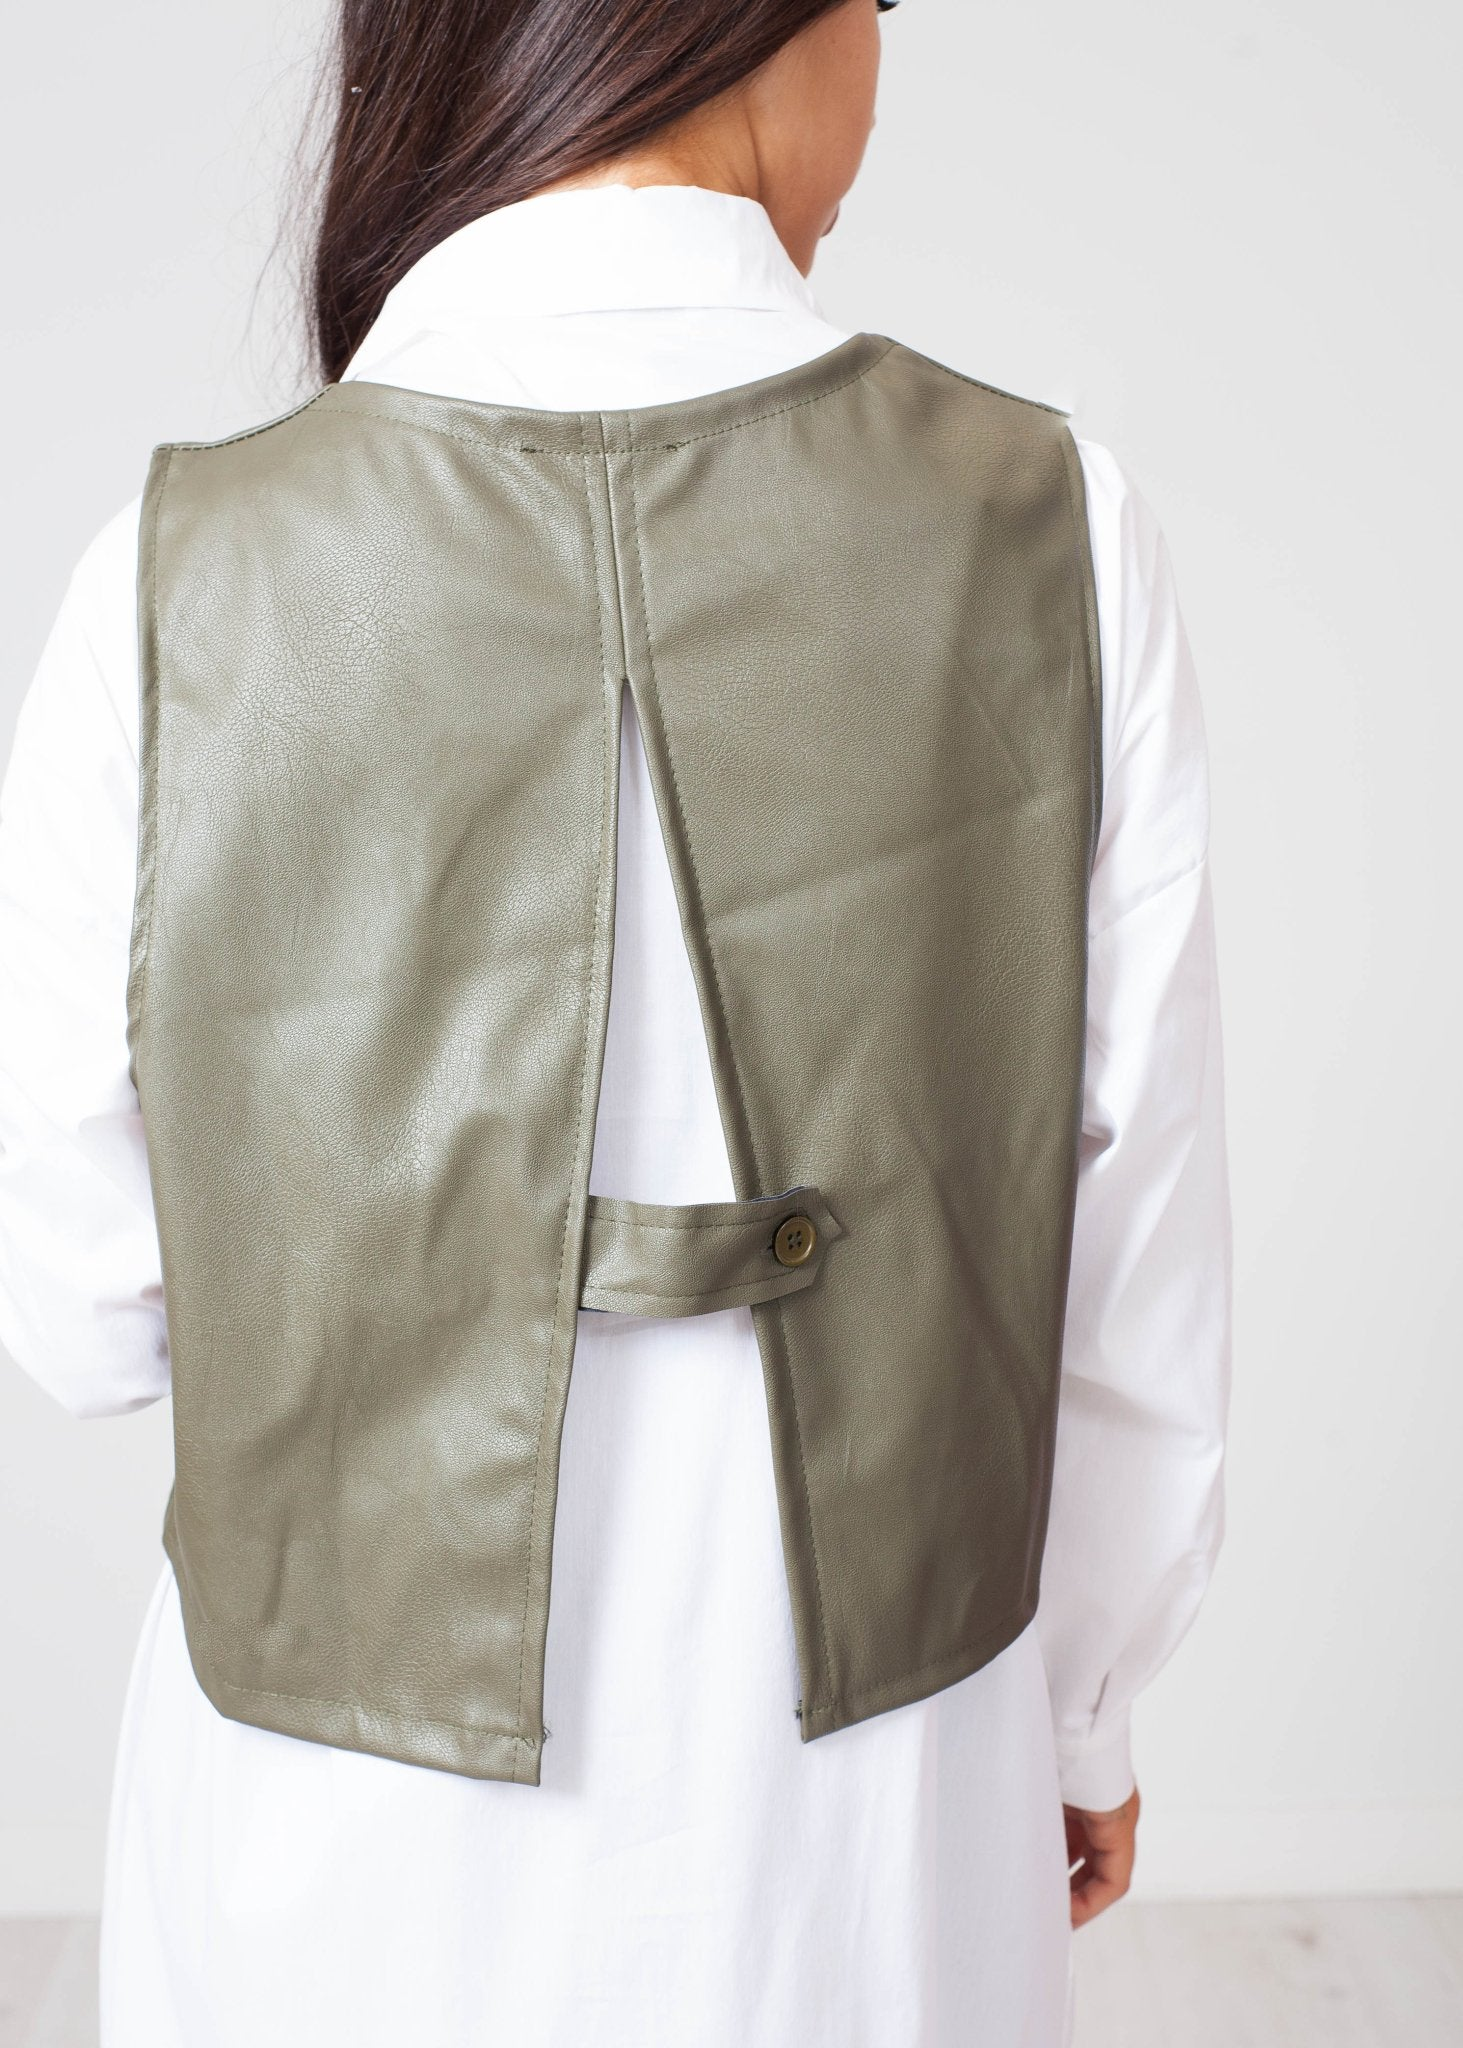 Emilia Shirt And Leather Vest In Khaki - The Walk in Wardrobe